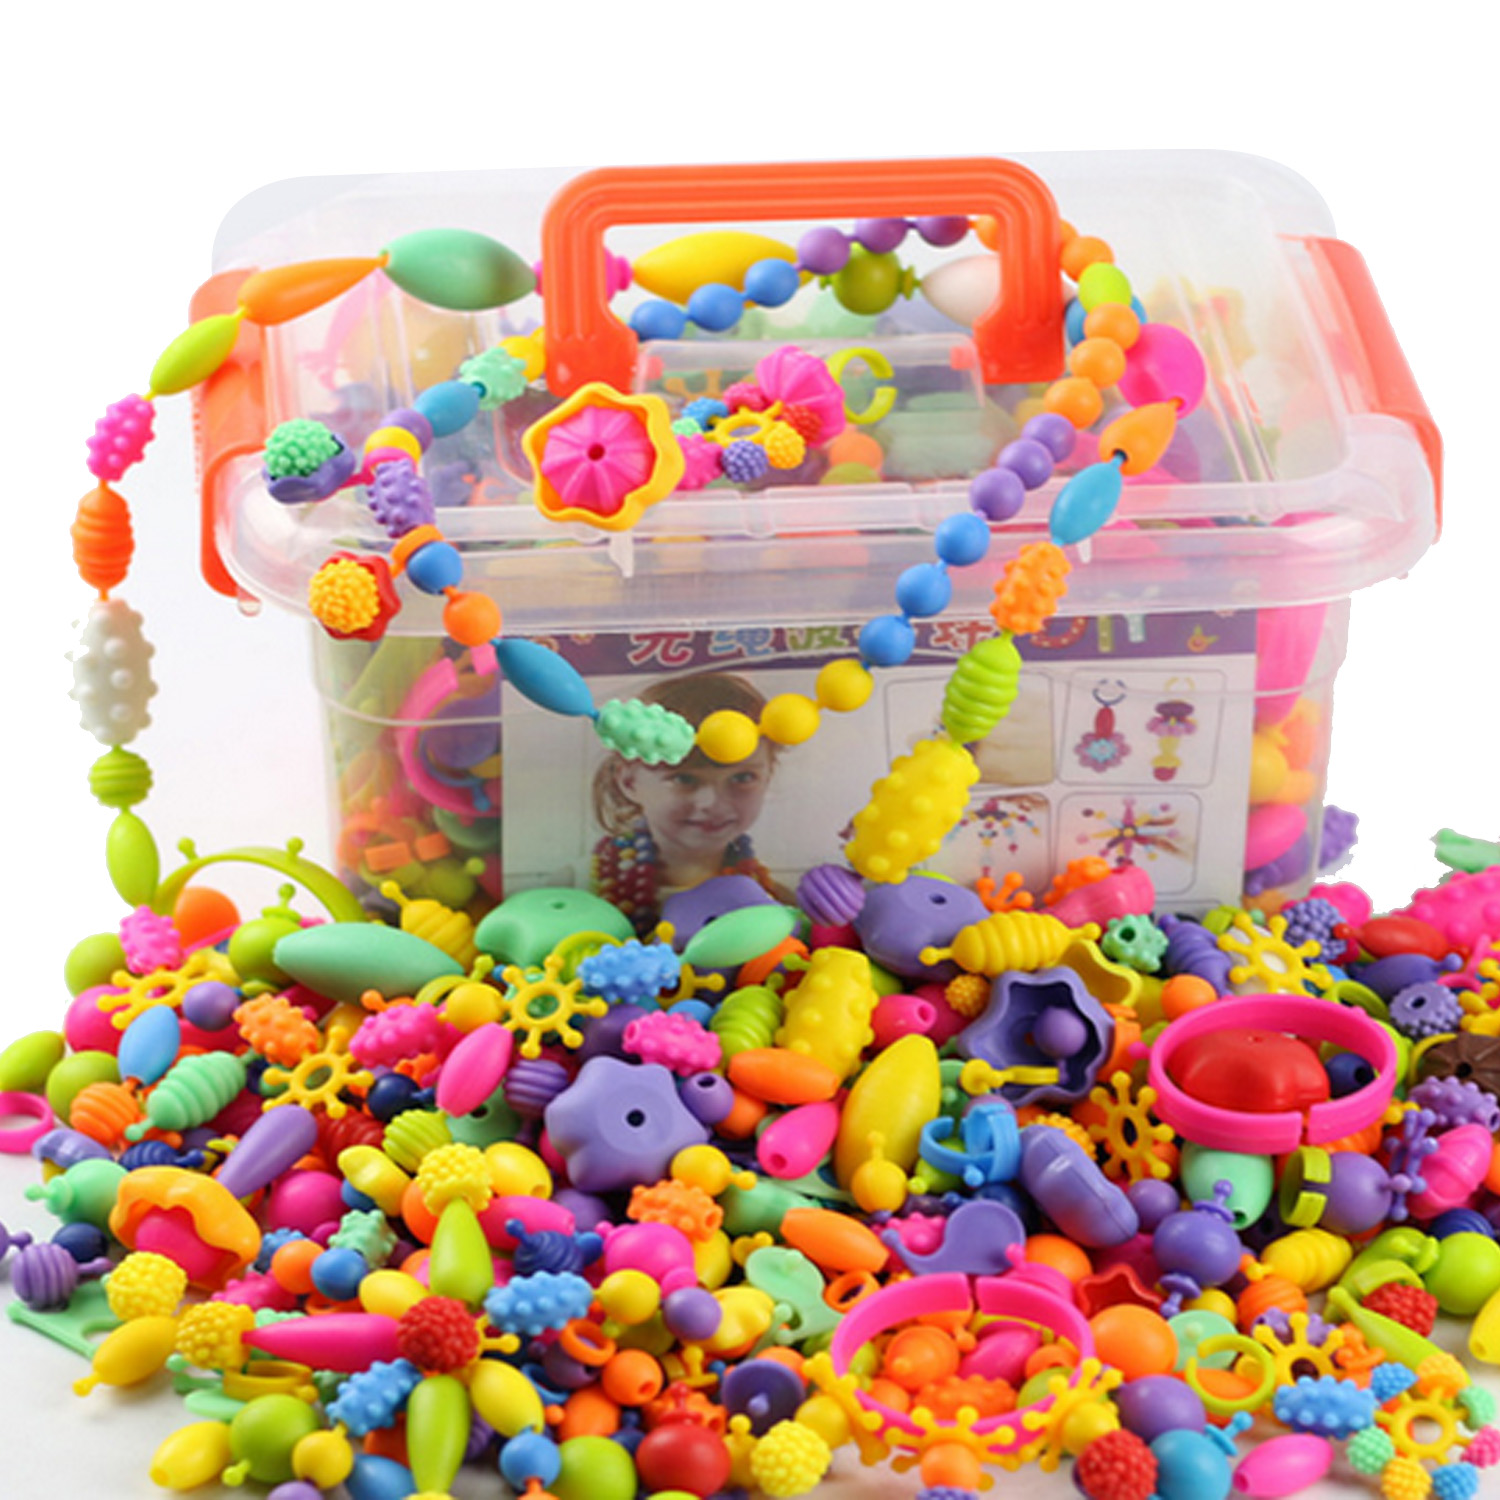 485PCS Kids Candy Color Plastic Pop Beads Girls Snap Together Beads Kit DIY Necklace Bracelet Jewelry Making Making Beaded Toy